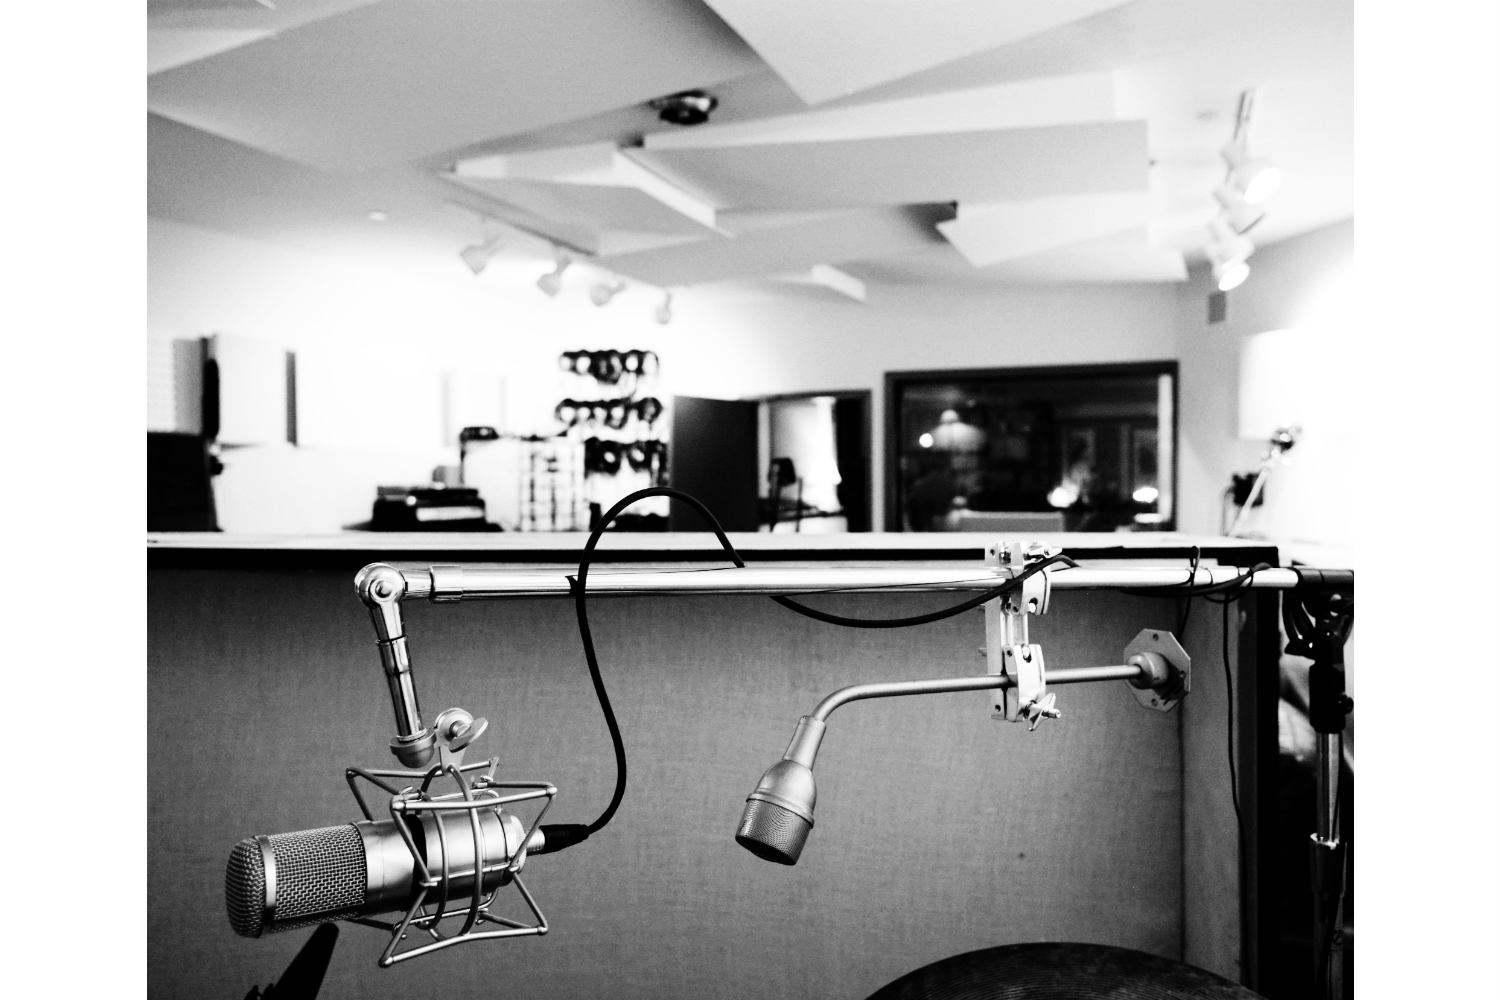 Jack Antonoff's XL Studios from his XL Recordings label, located in Soho, NYC, designed by WSDG. Live Room Micing